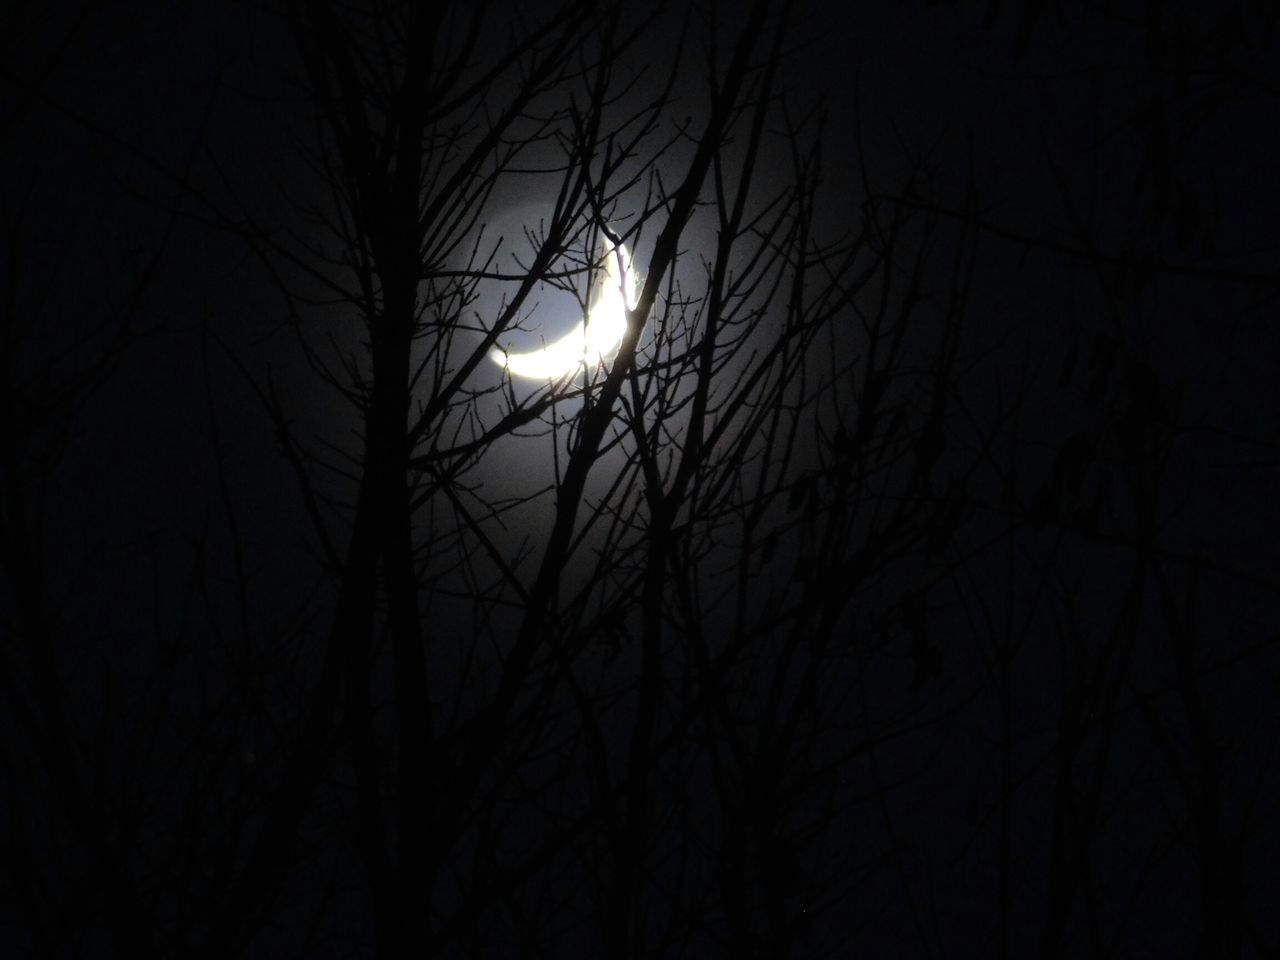 night, bare tree, silhouette, branch, nature, moon, no people, animal themes, outdoors, beauty in nature, tree, bird, one animal, animals in the wild, low angle view, black background, sky, astronomy